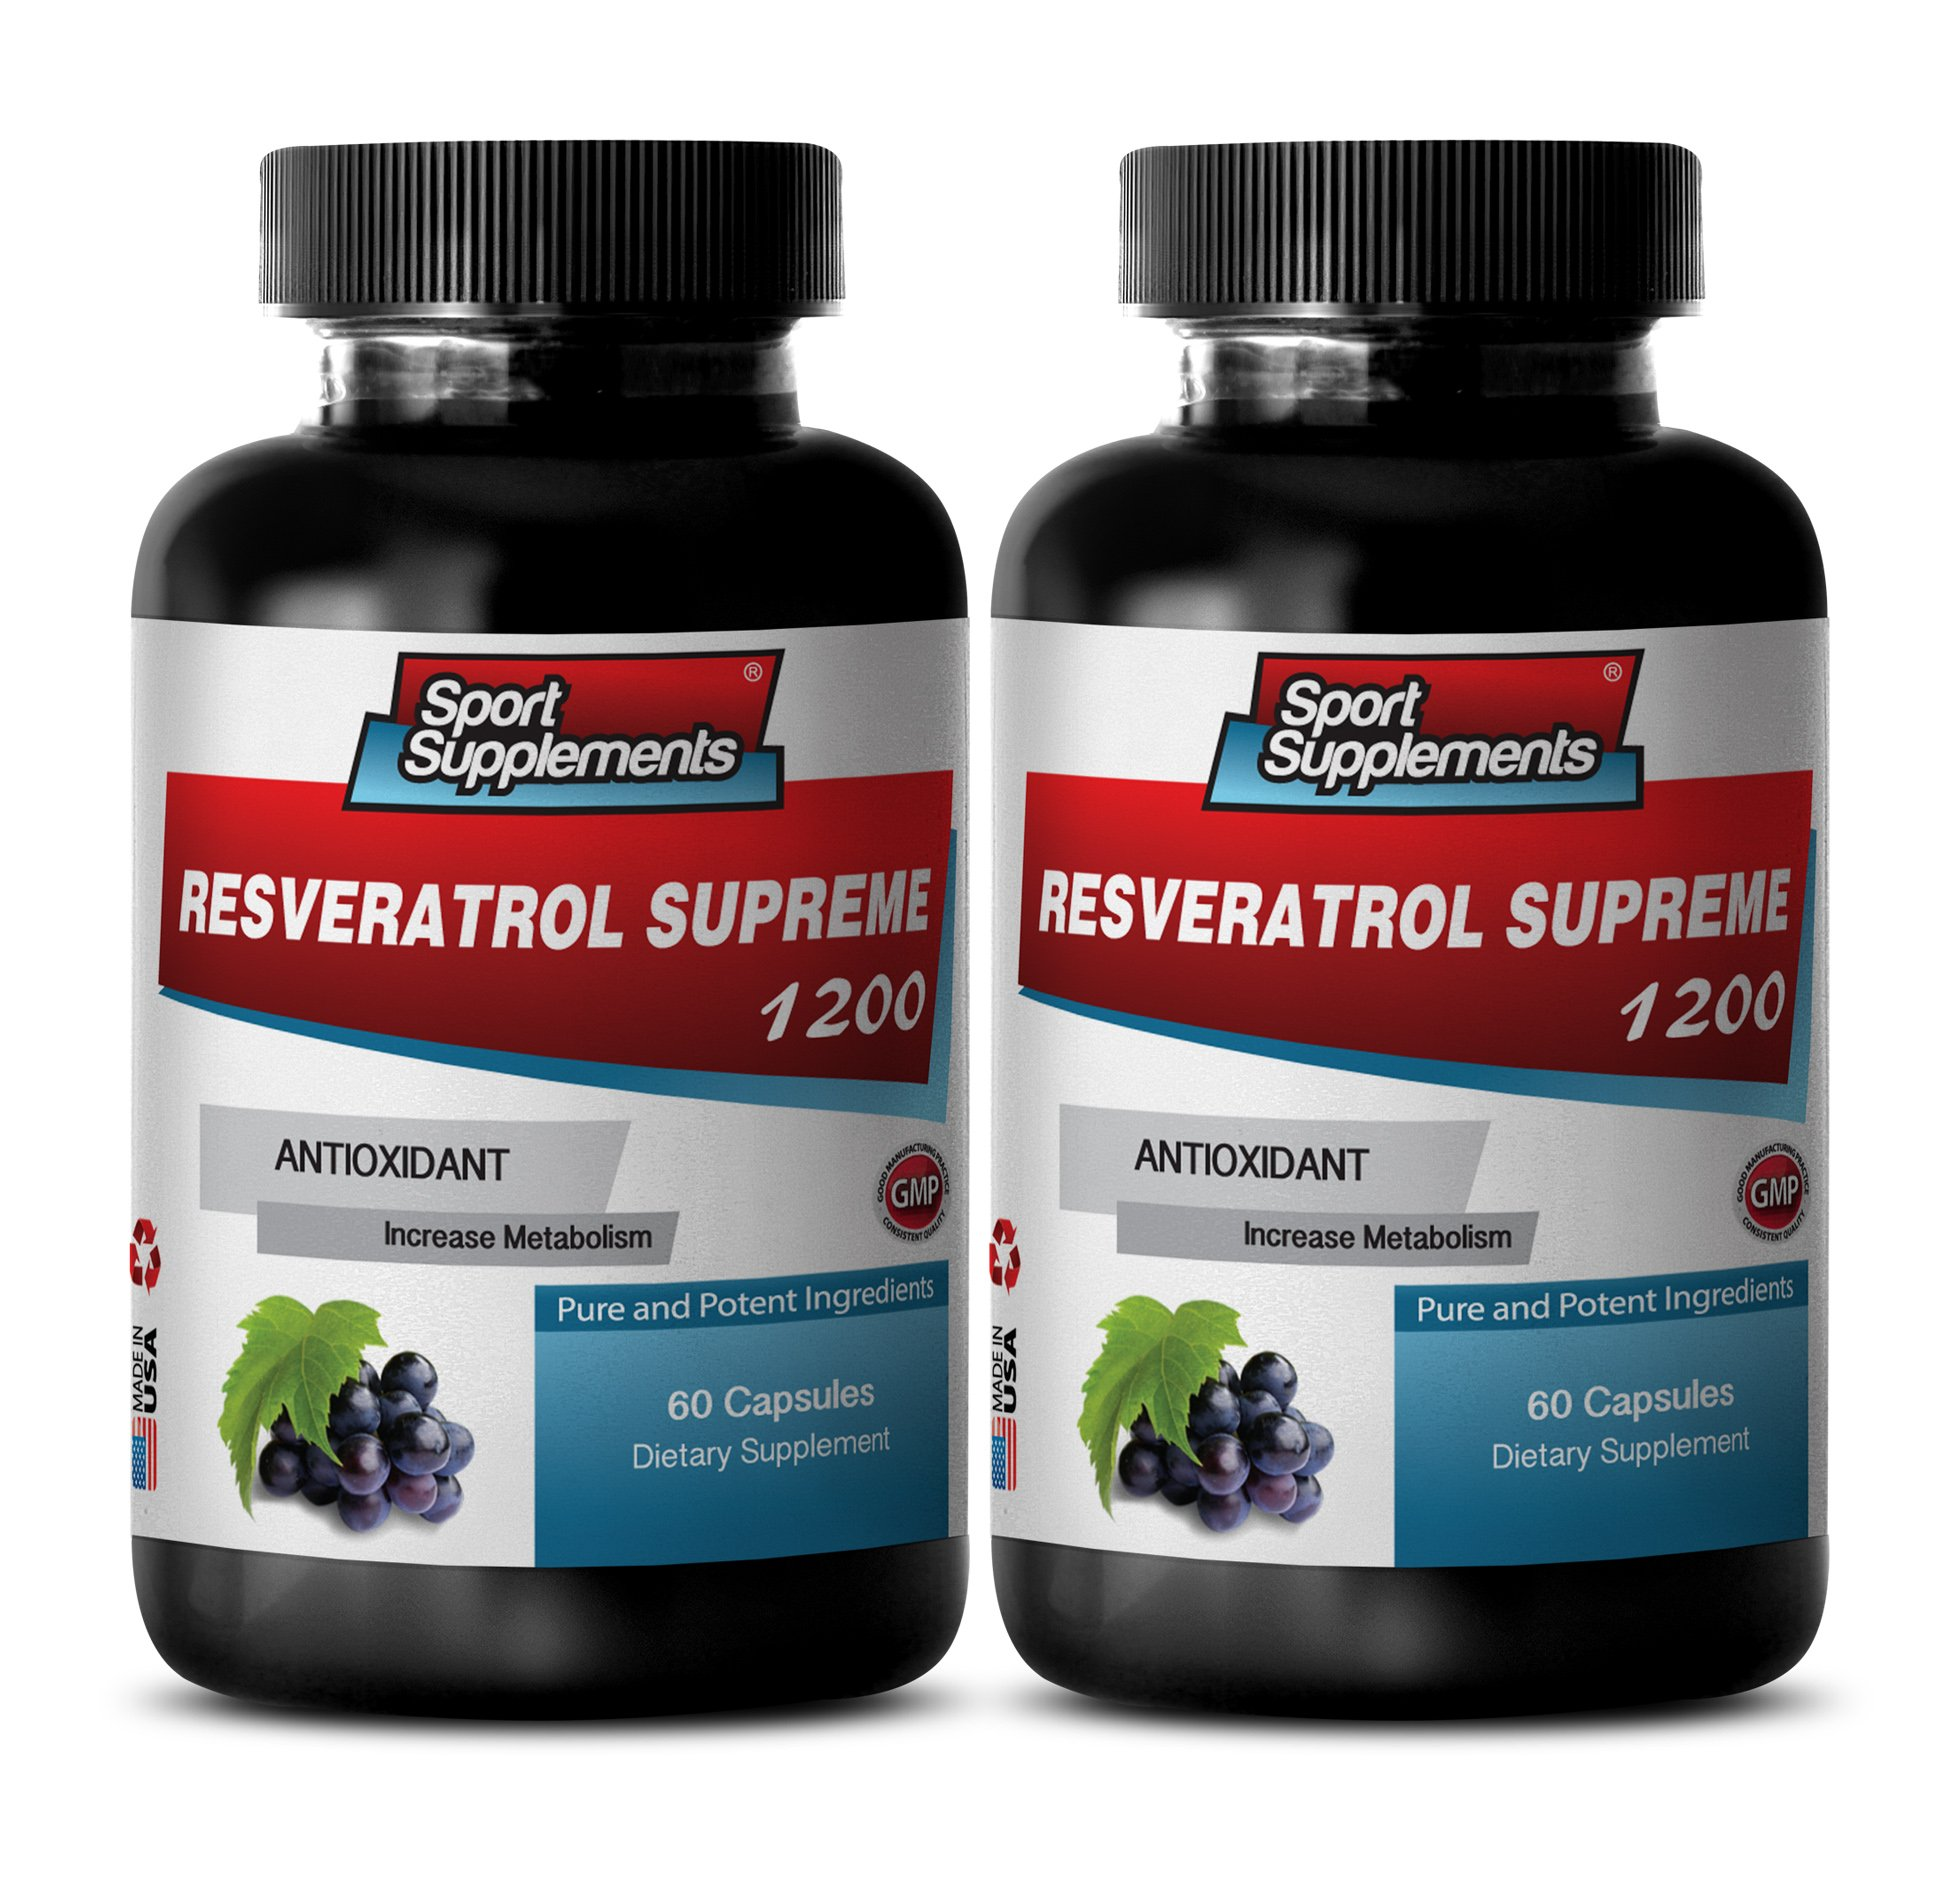 Herbal Complex with Resveratrol 1200mg Maximum Strength Plus 1200 Red Wine Supplements(2 Bottles)